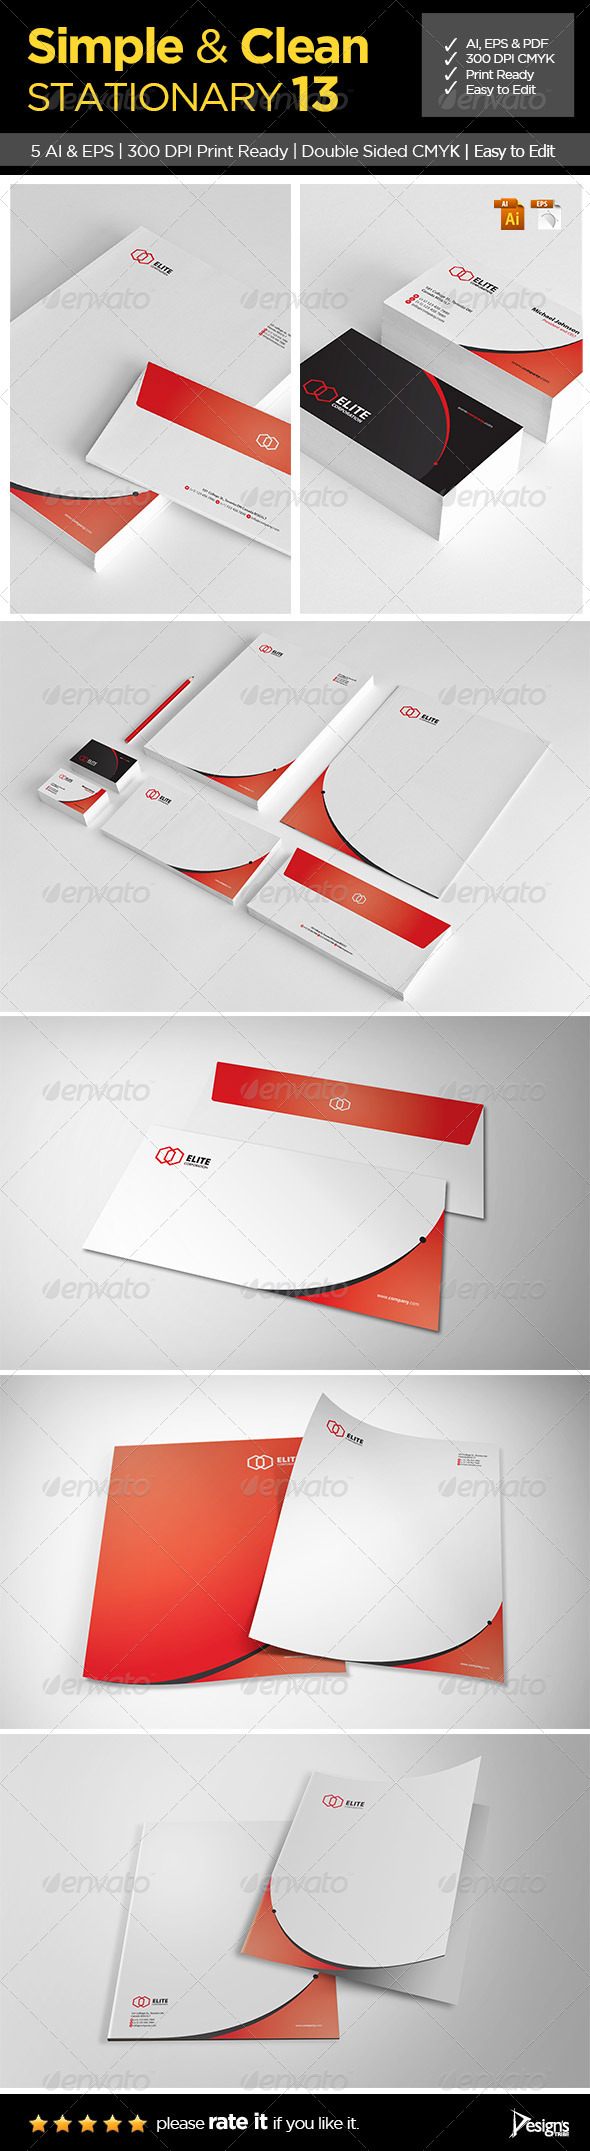 Simple and Clean Stationary 13 - Stationery Print Templates